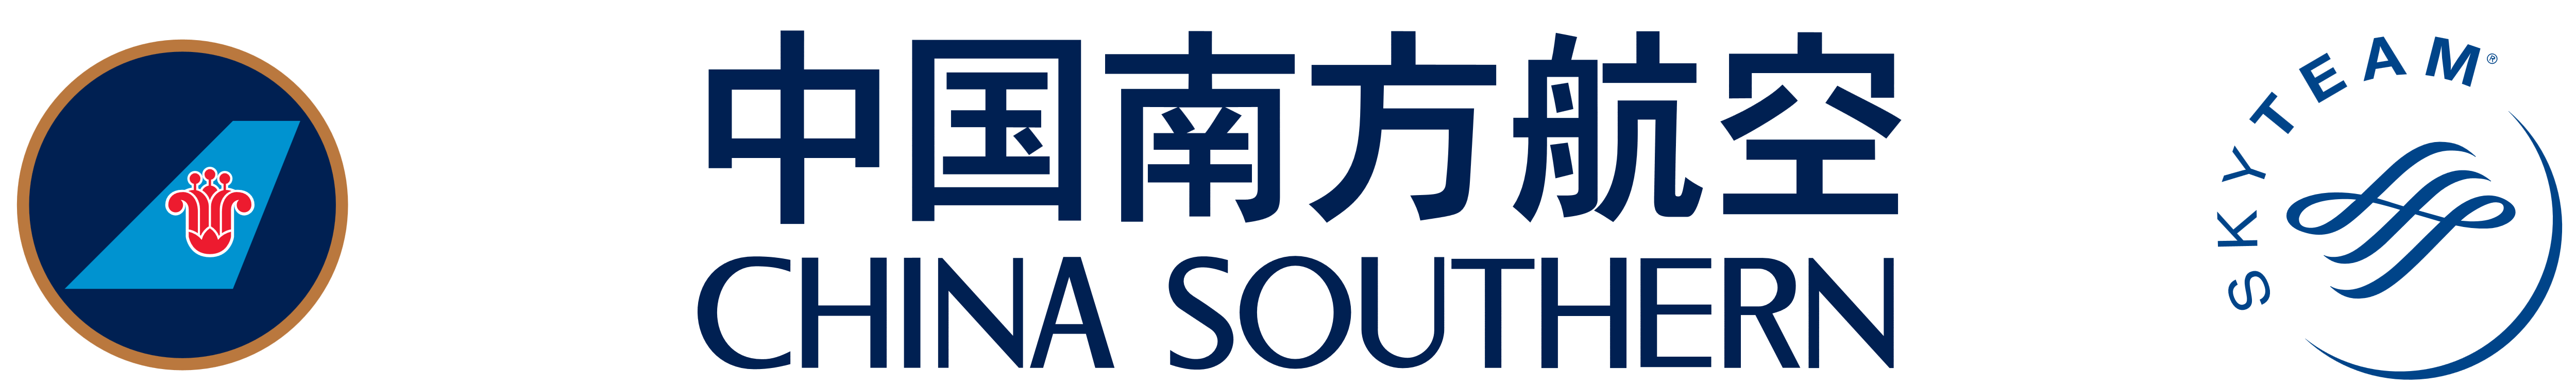 China Southern Airlines logo, emblem, logotype - China Southern Airlines Logo PNG